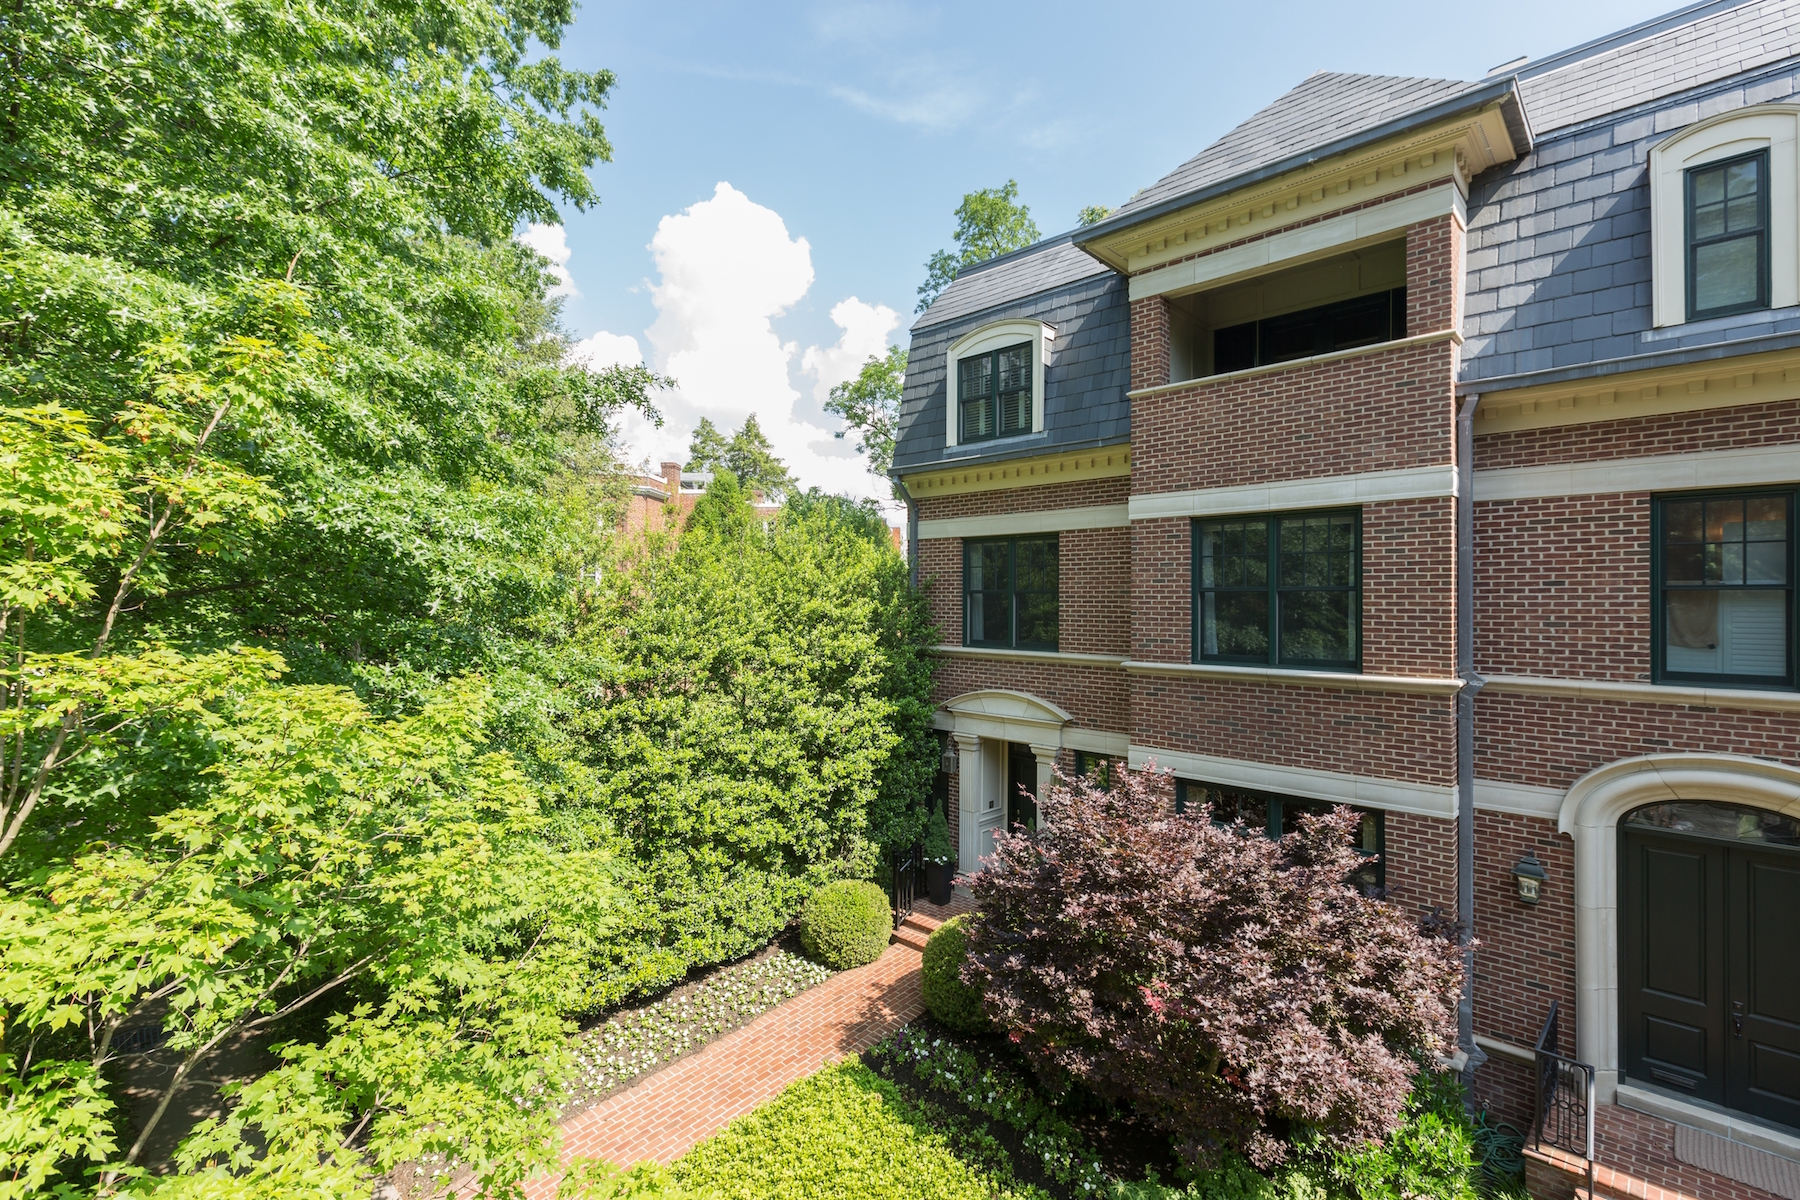 Townhouse for Sale at Woodley Park 2735 Cathedral Avenue Nw Washington, District Of Columbia 20008 United States